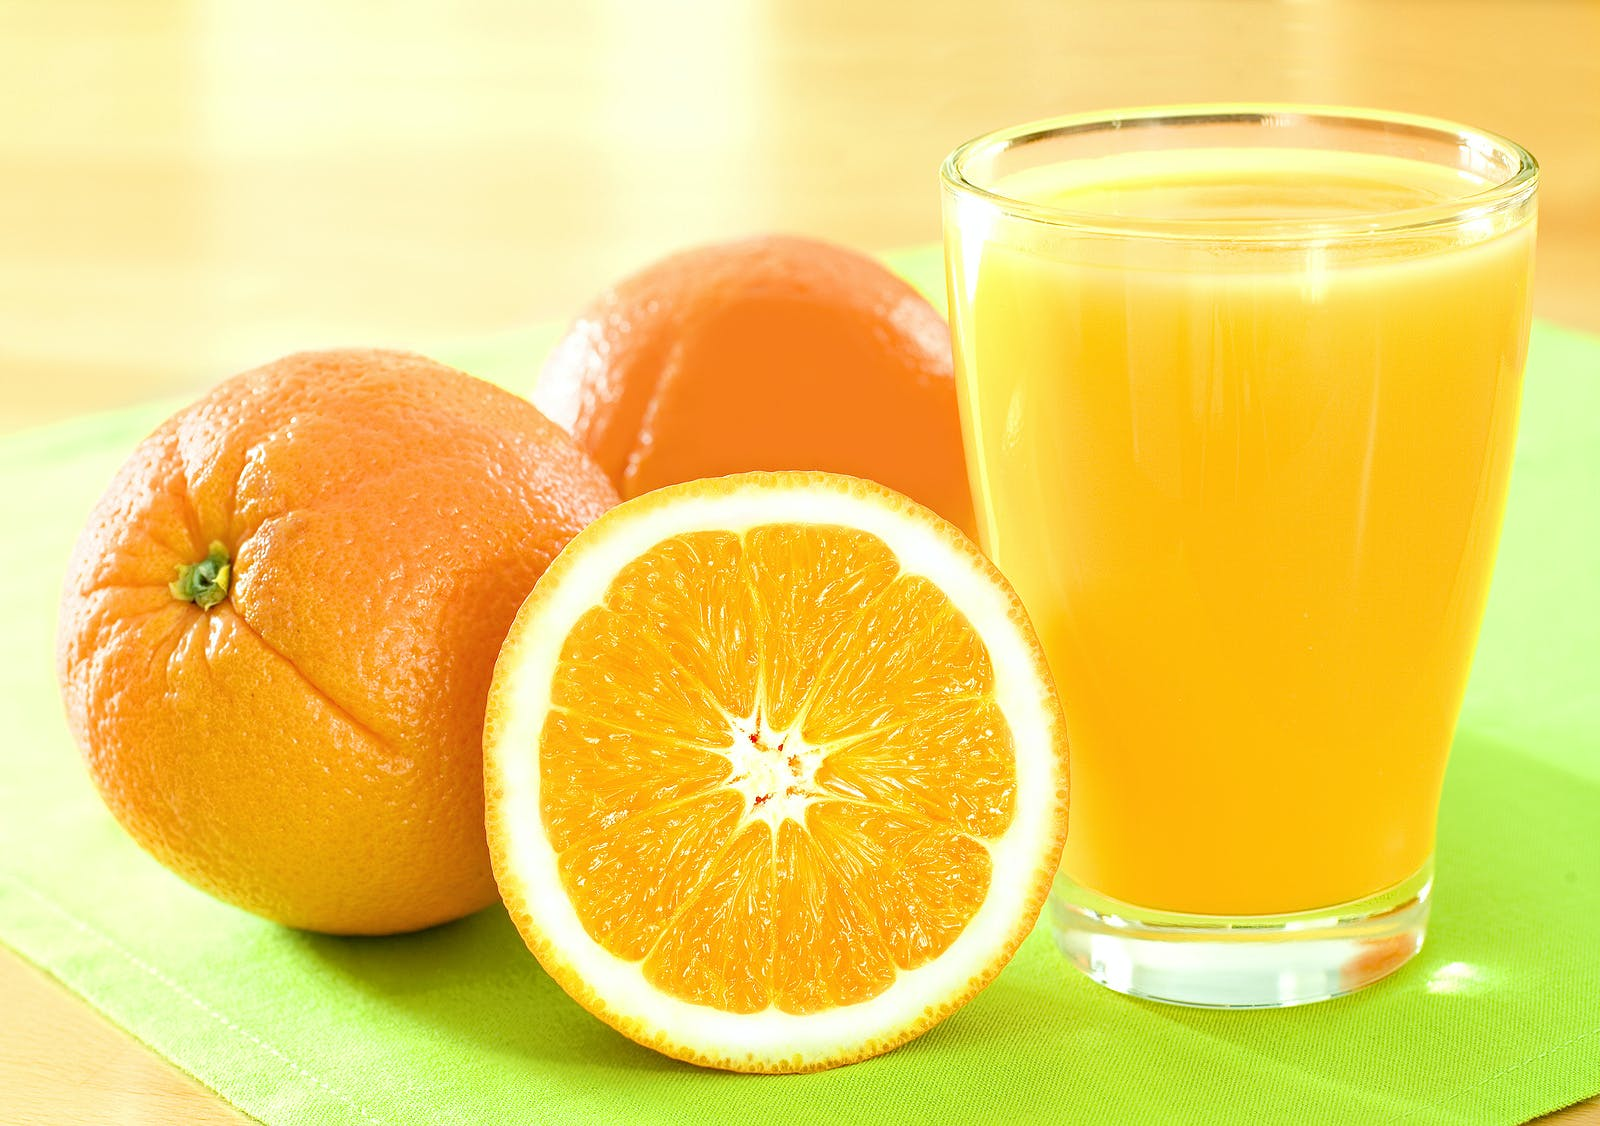 oranges and juice, a great source of immunity-boosting nutrients